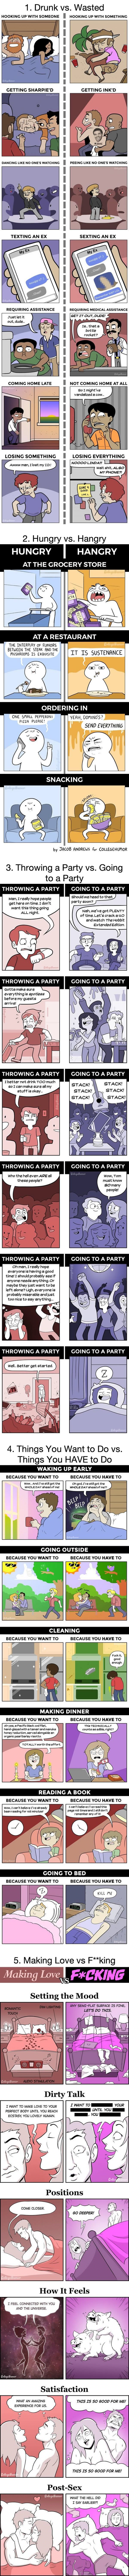 5 Comics That Show How Little Differences Can Change EVERYTHING